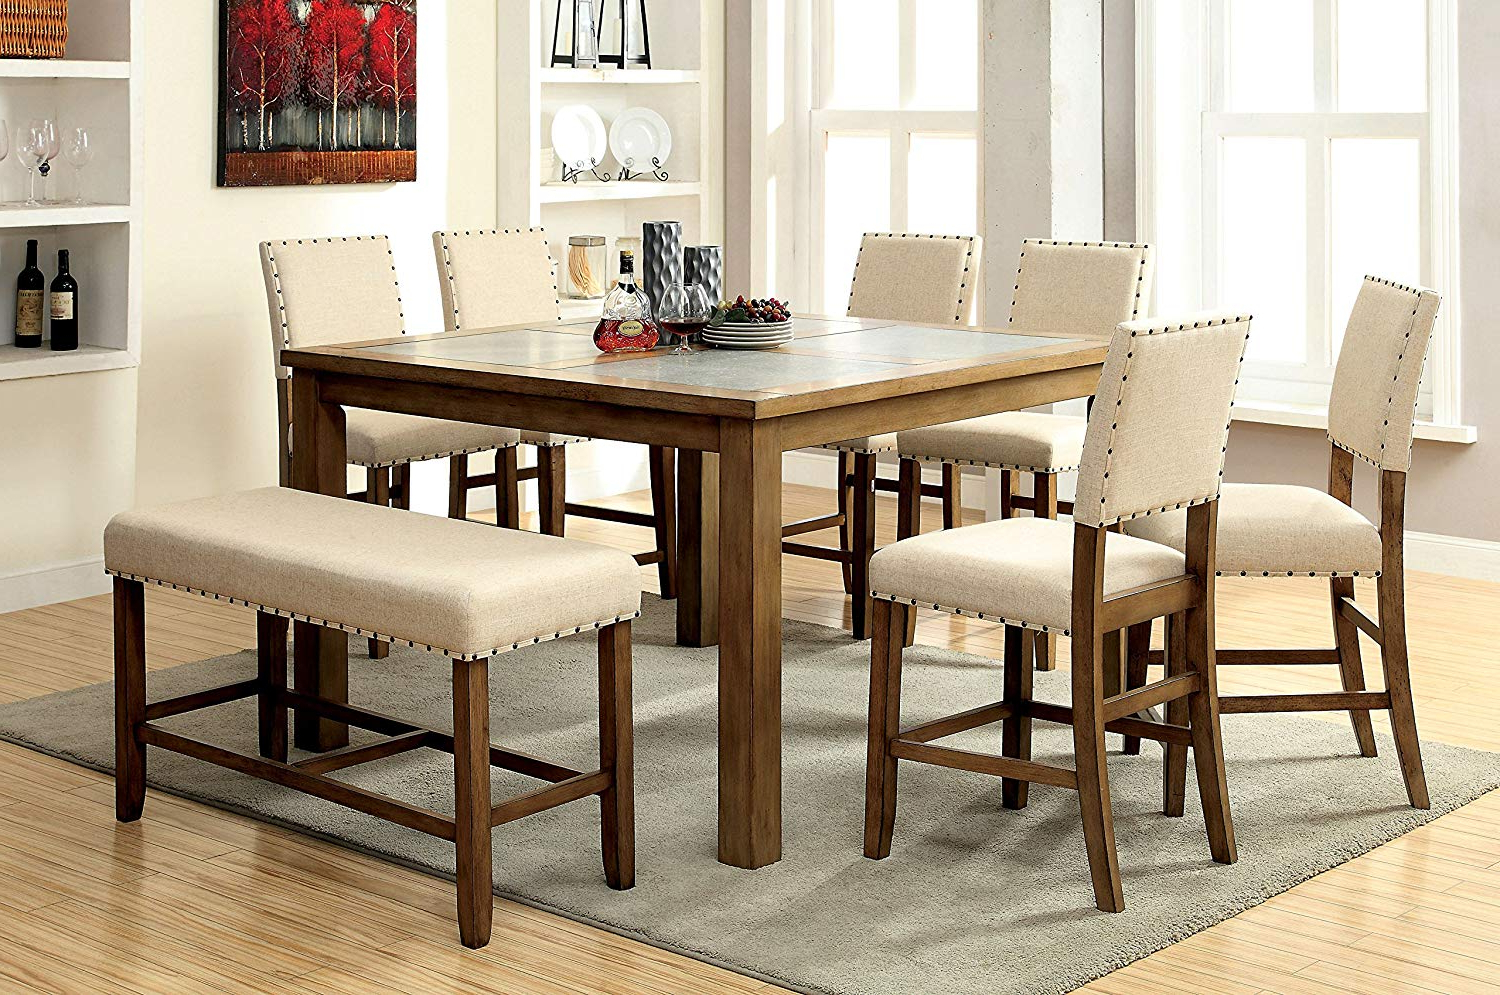 Widely Used Transitional Driftwood Casual Dining Tables For Furniture Of America Lucena 8 Piece Transitional Pub Dining Set (Gallery 4 of 30)